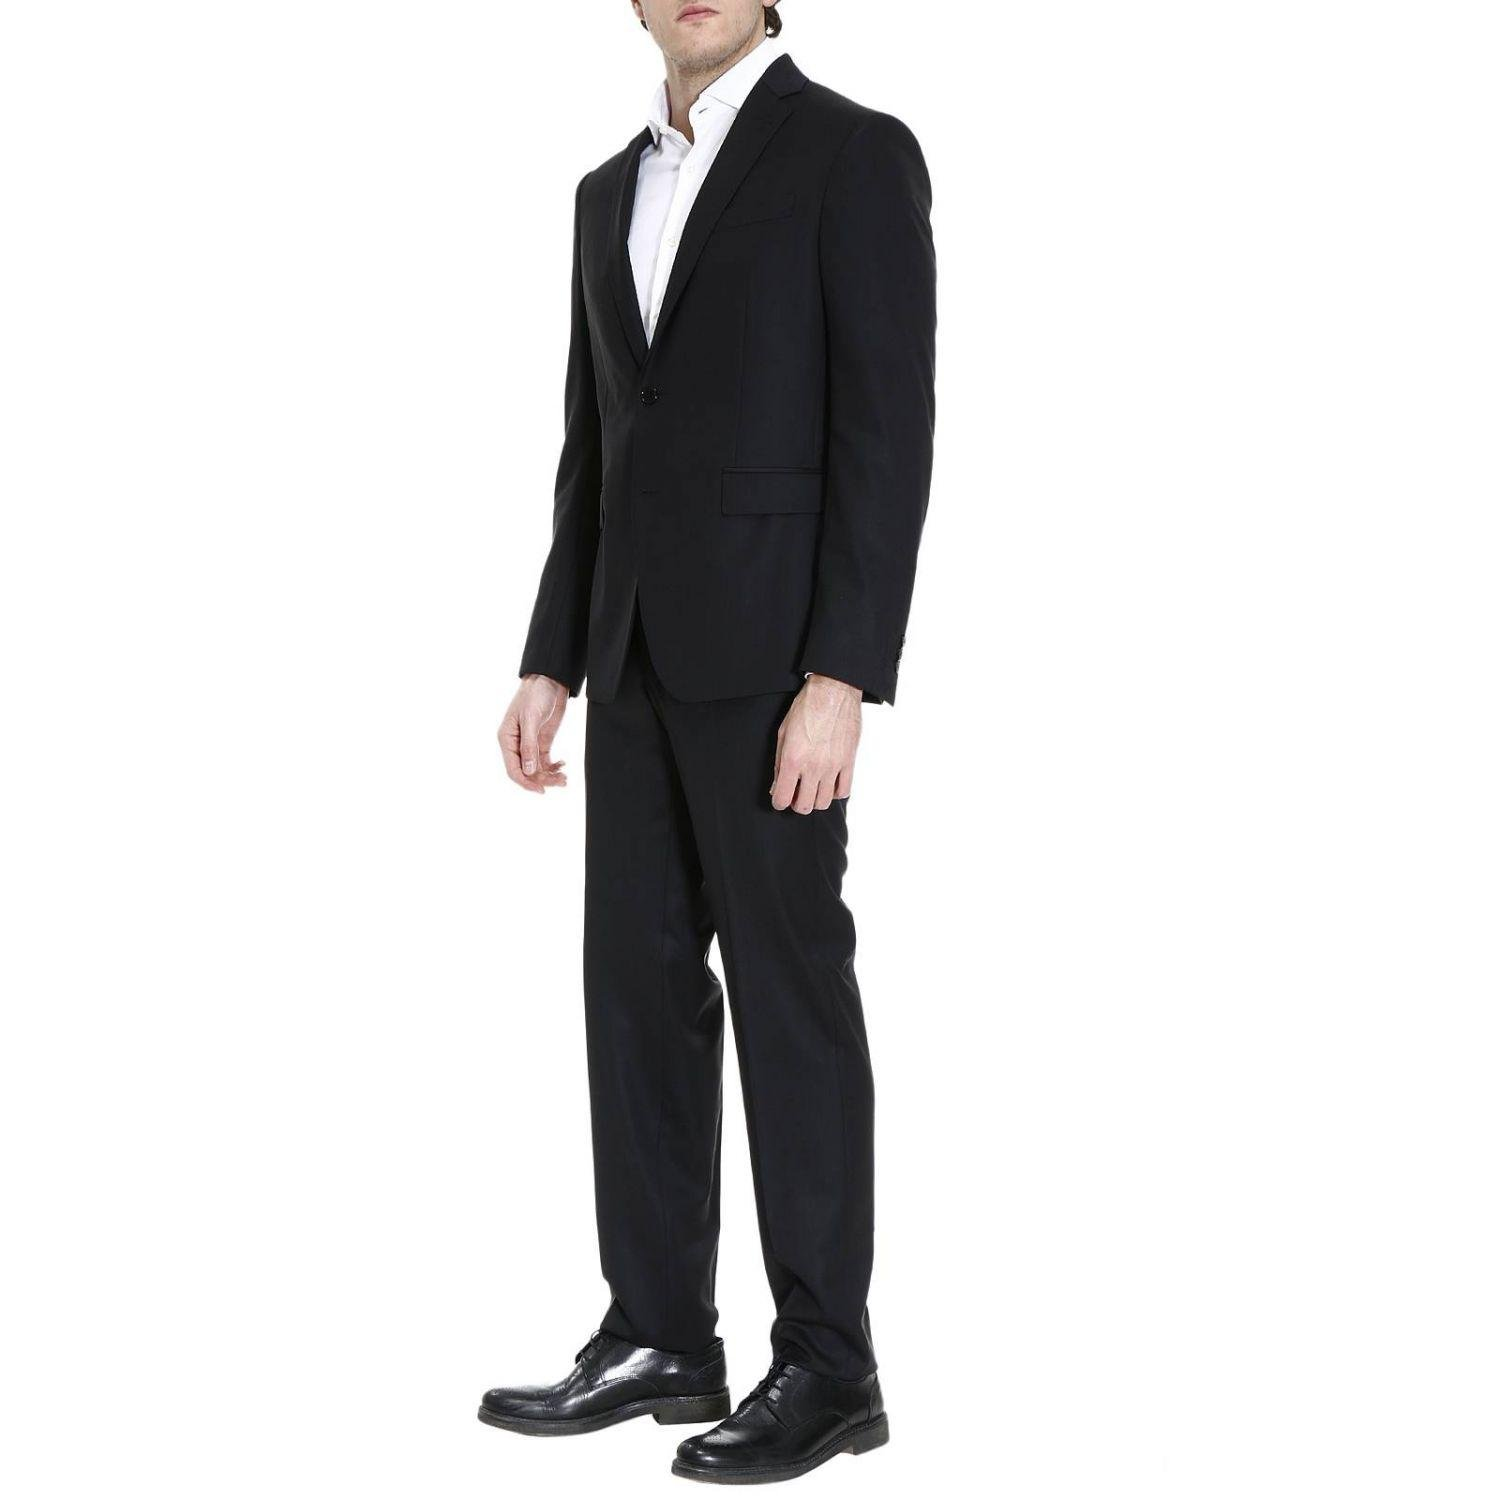 Versace Suits Men In Black For Men